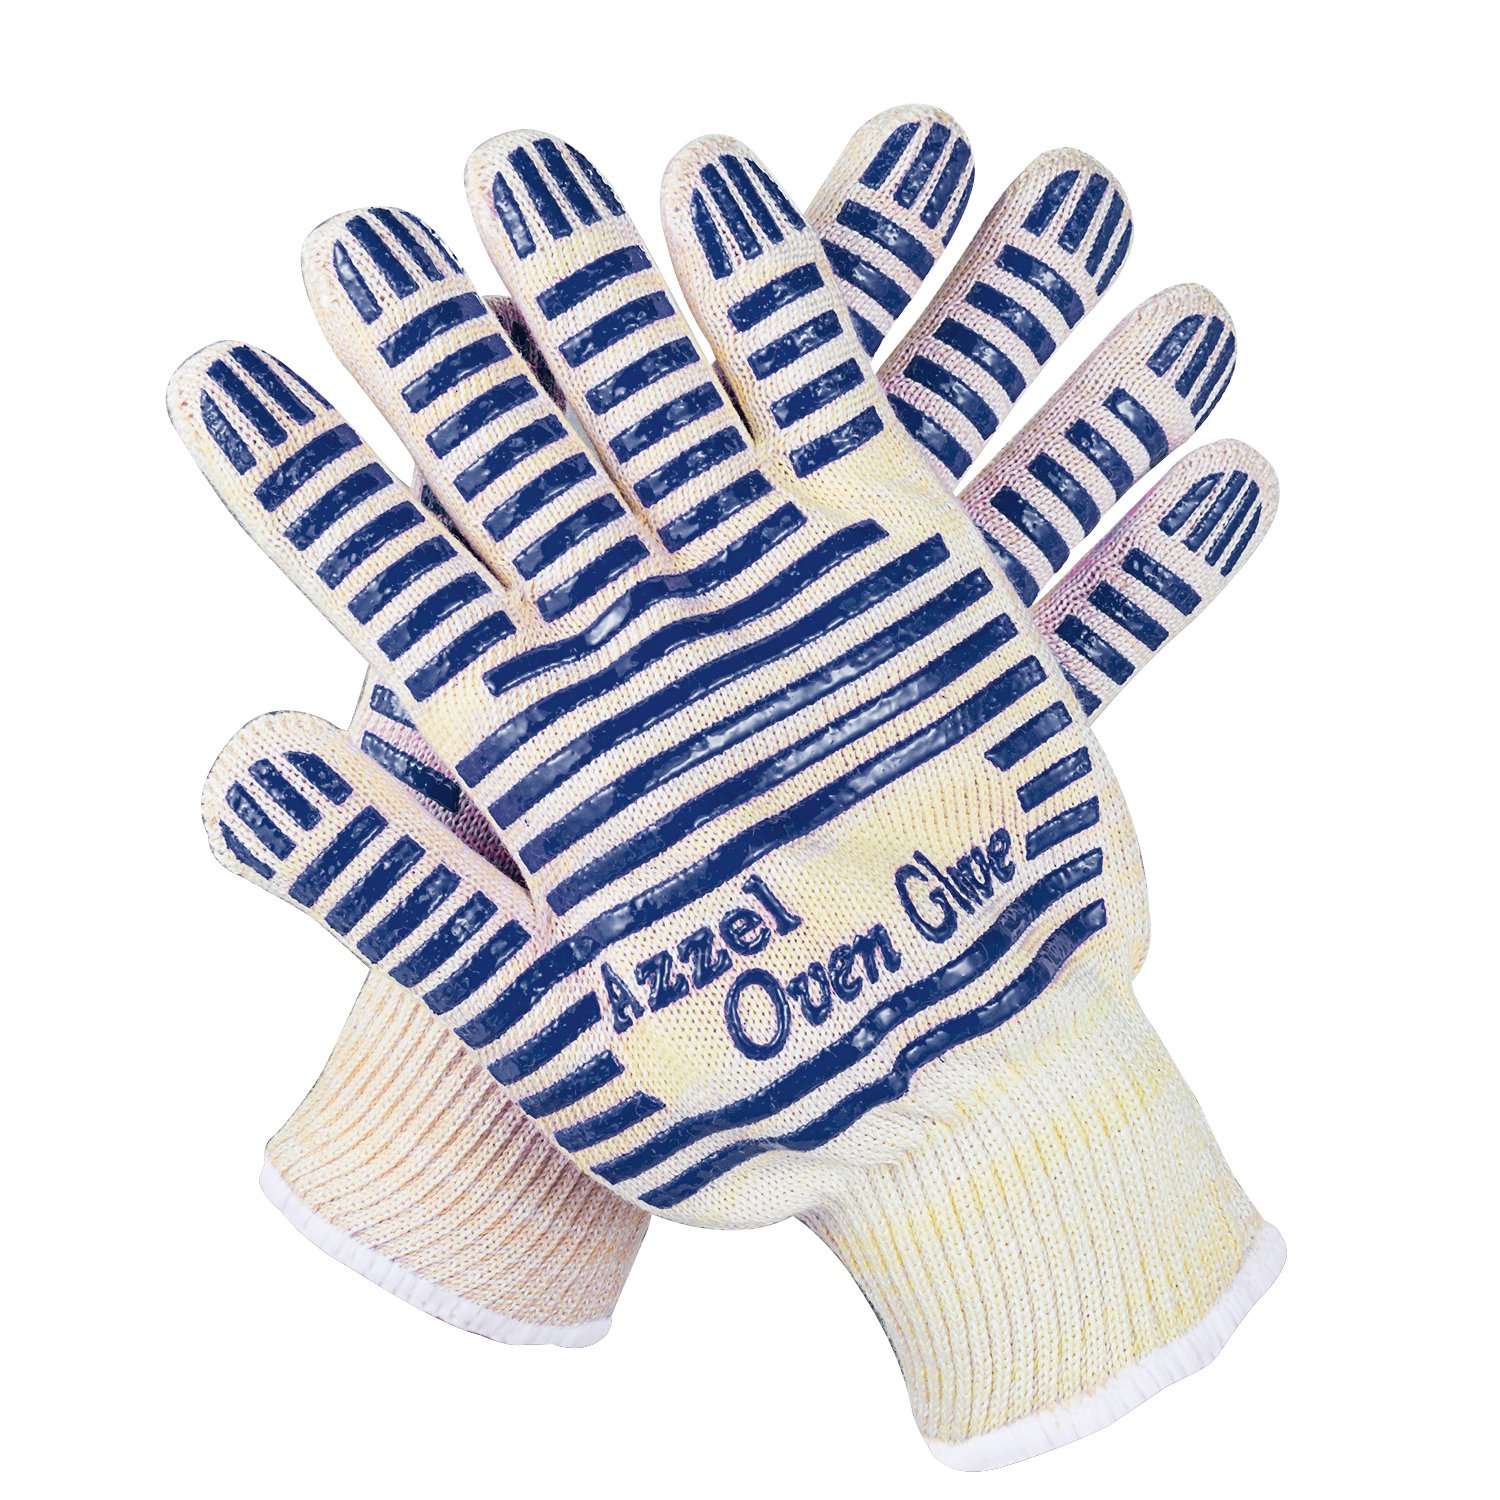 Azzel Oven Glove Heat Resistant Oven Mitts with Fingers,EN407 Certified Extreme Heat Up to 932°F (Set of 2)